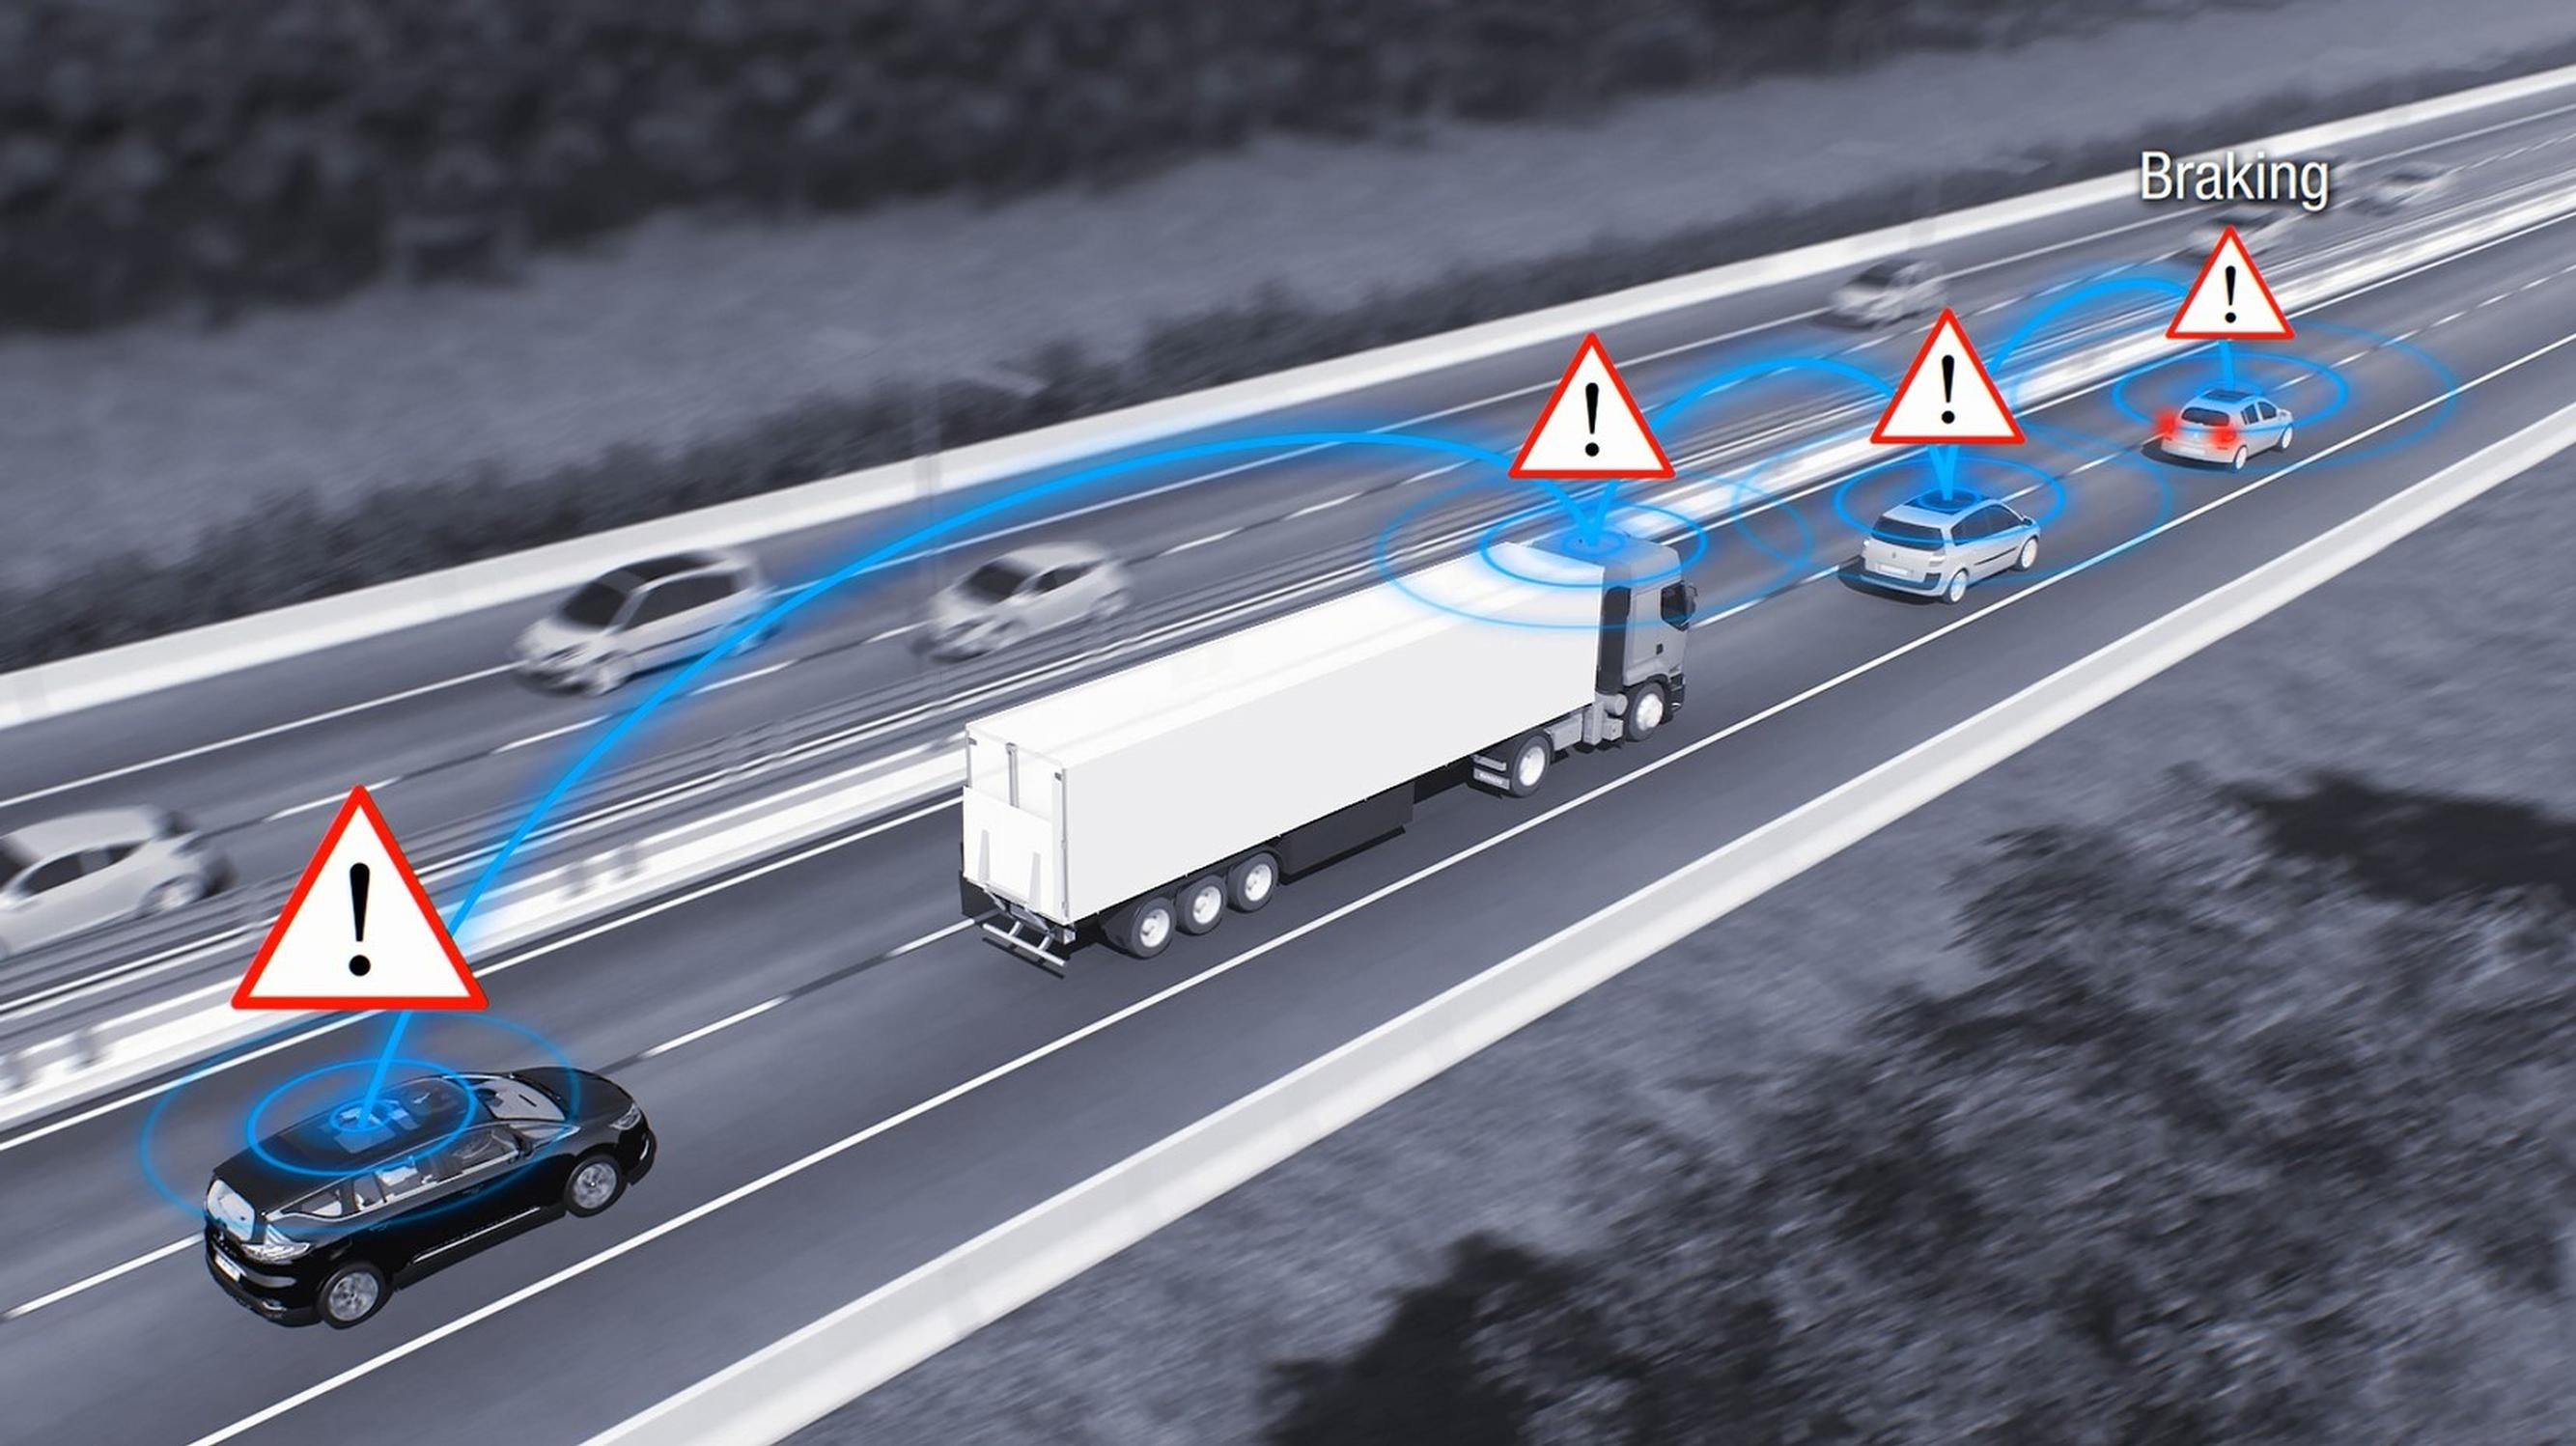 The EU project facilitates trials of future vehicle-to-vehicle (V2V) and vehicle-to-infrastructure (V2X) connectivity solutions under real-world driving conditions